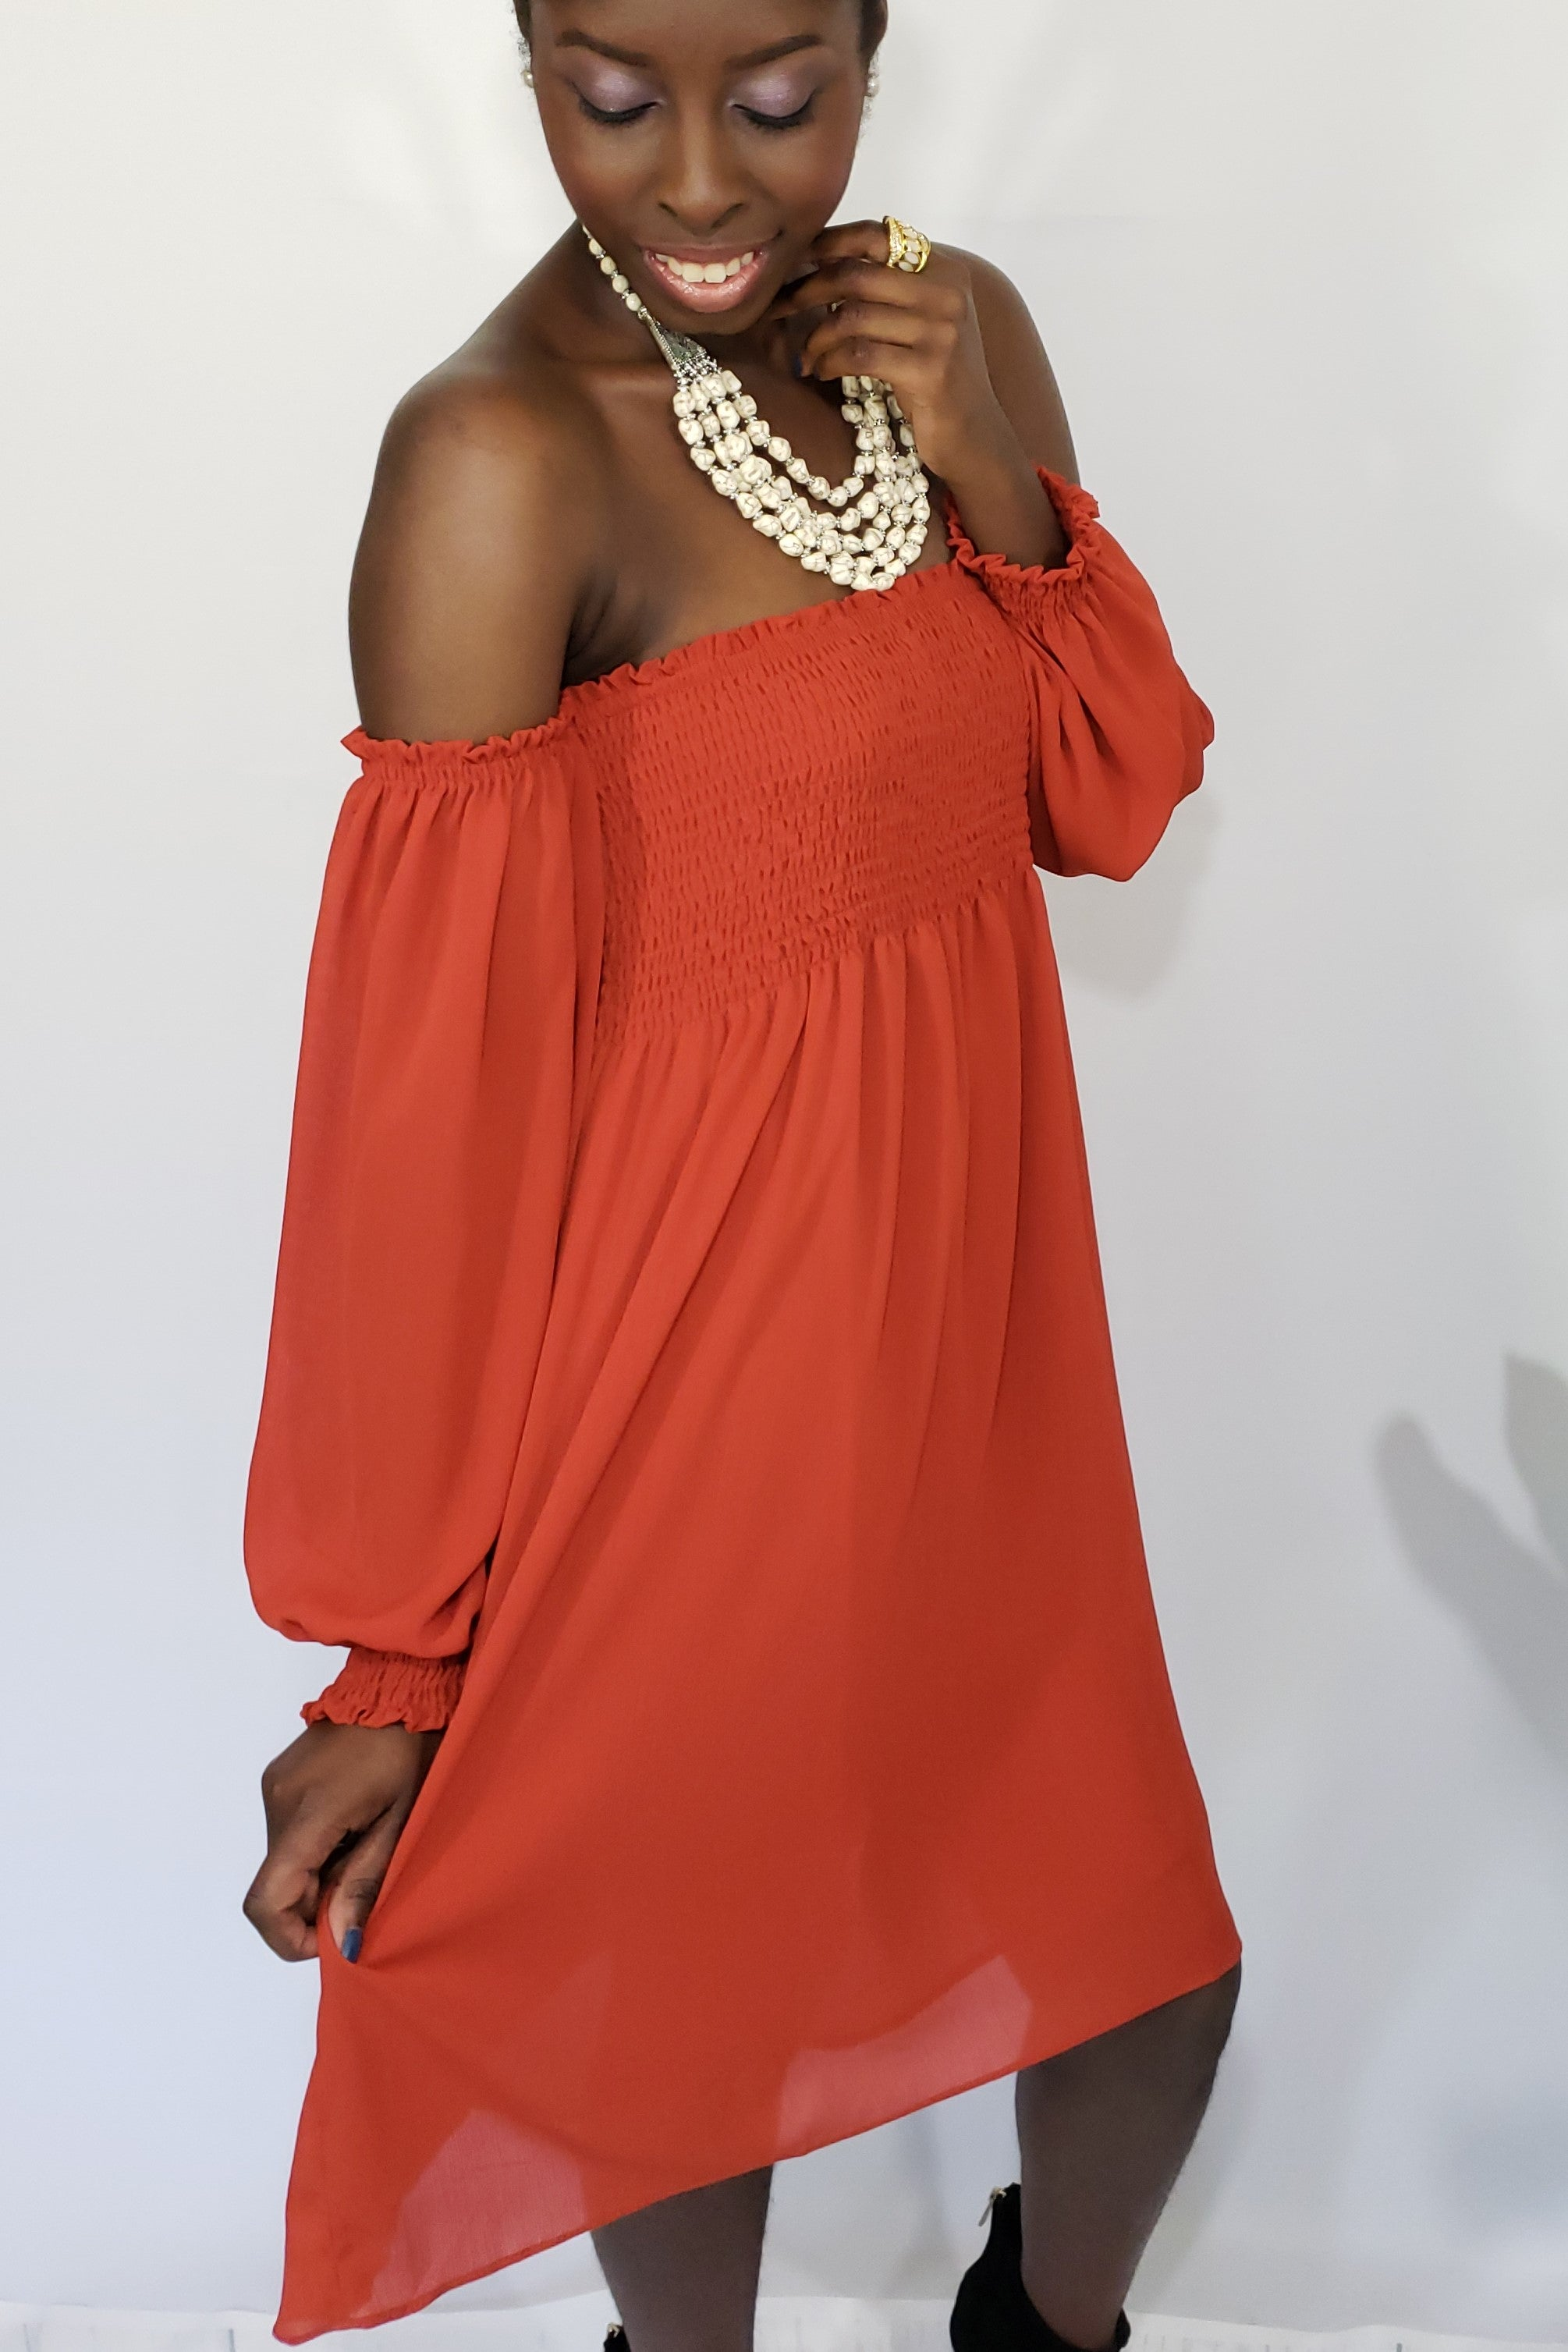 Irresistible Me Burnt Orange Off the Shoulder Dress - Houzz of DVA Boutique